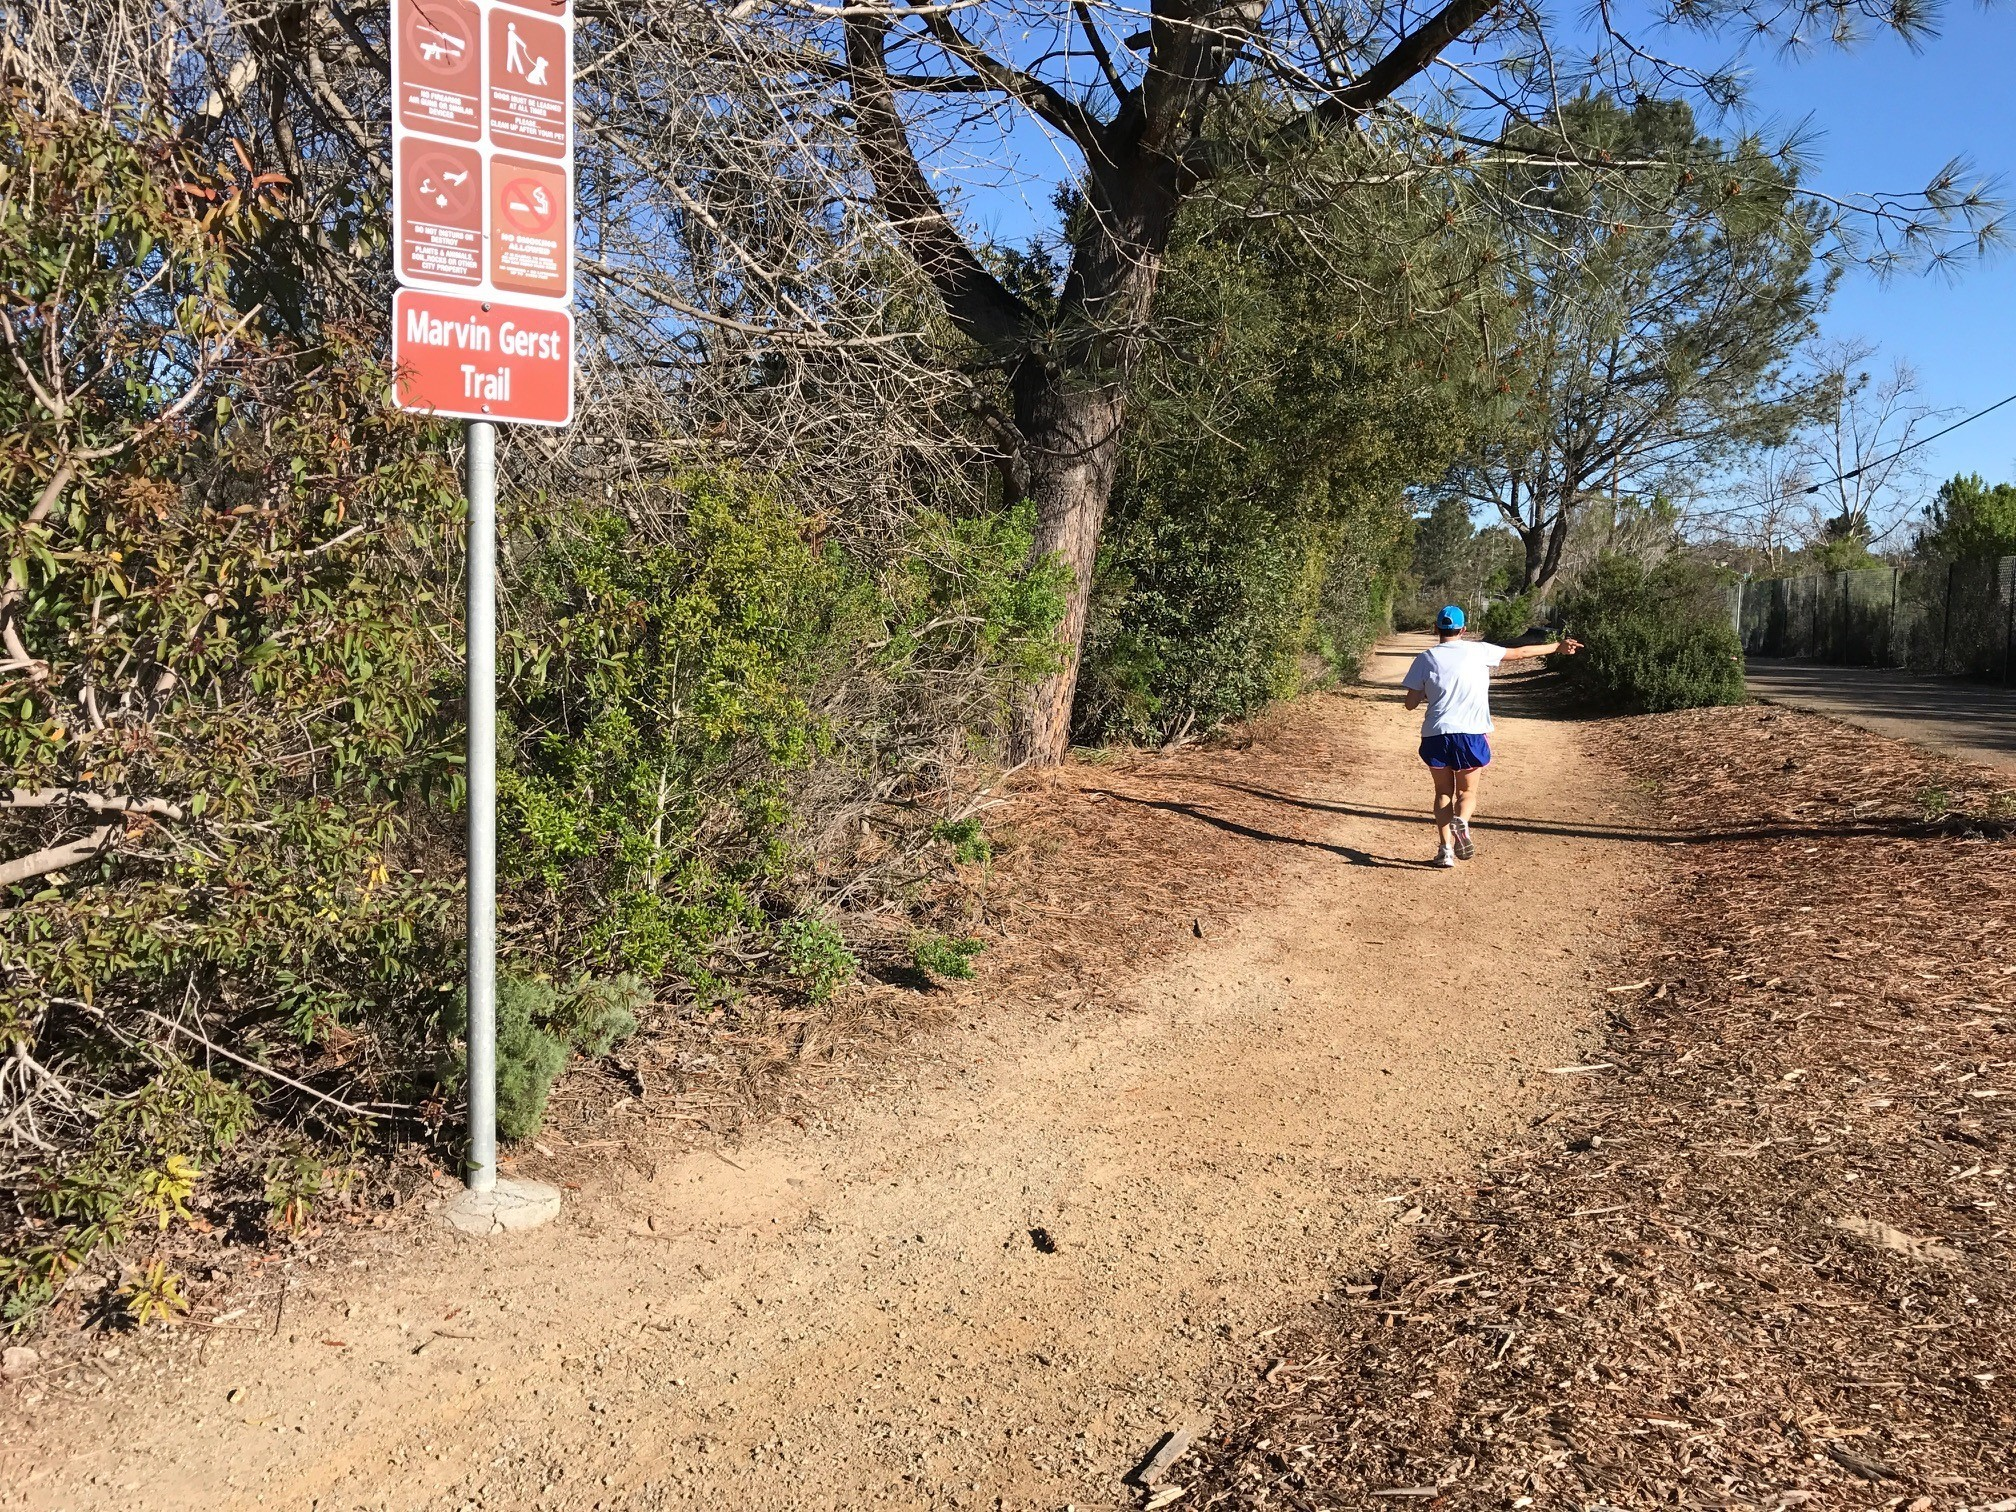 A runner on Marvin Gerst Trail.